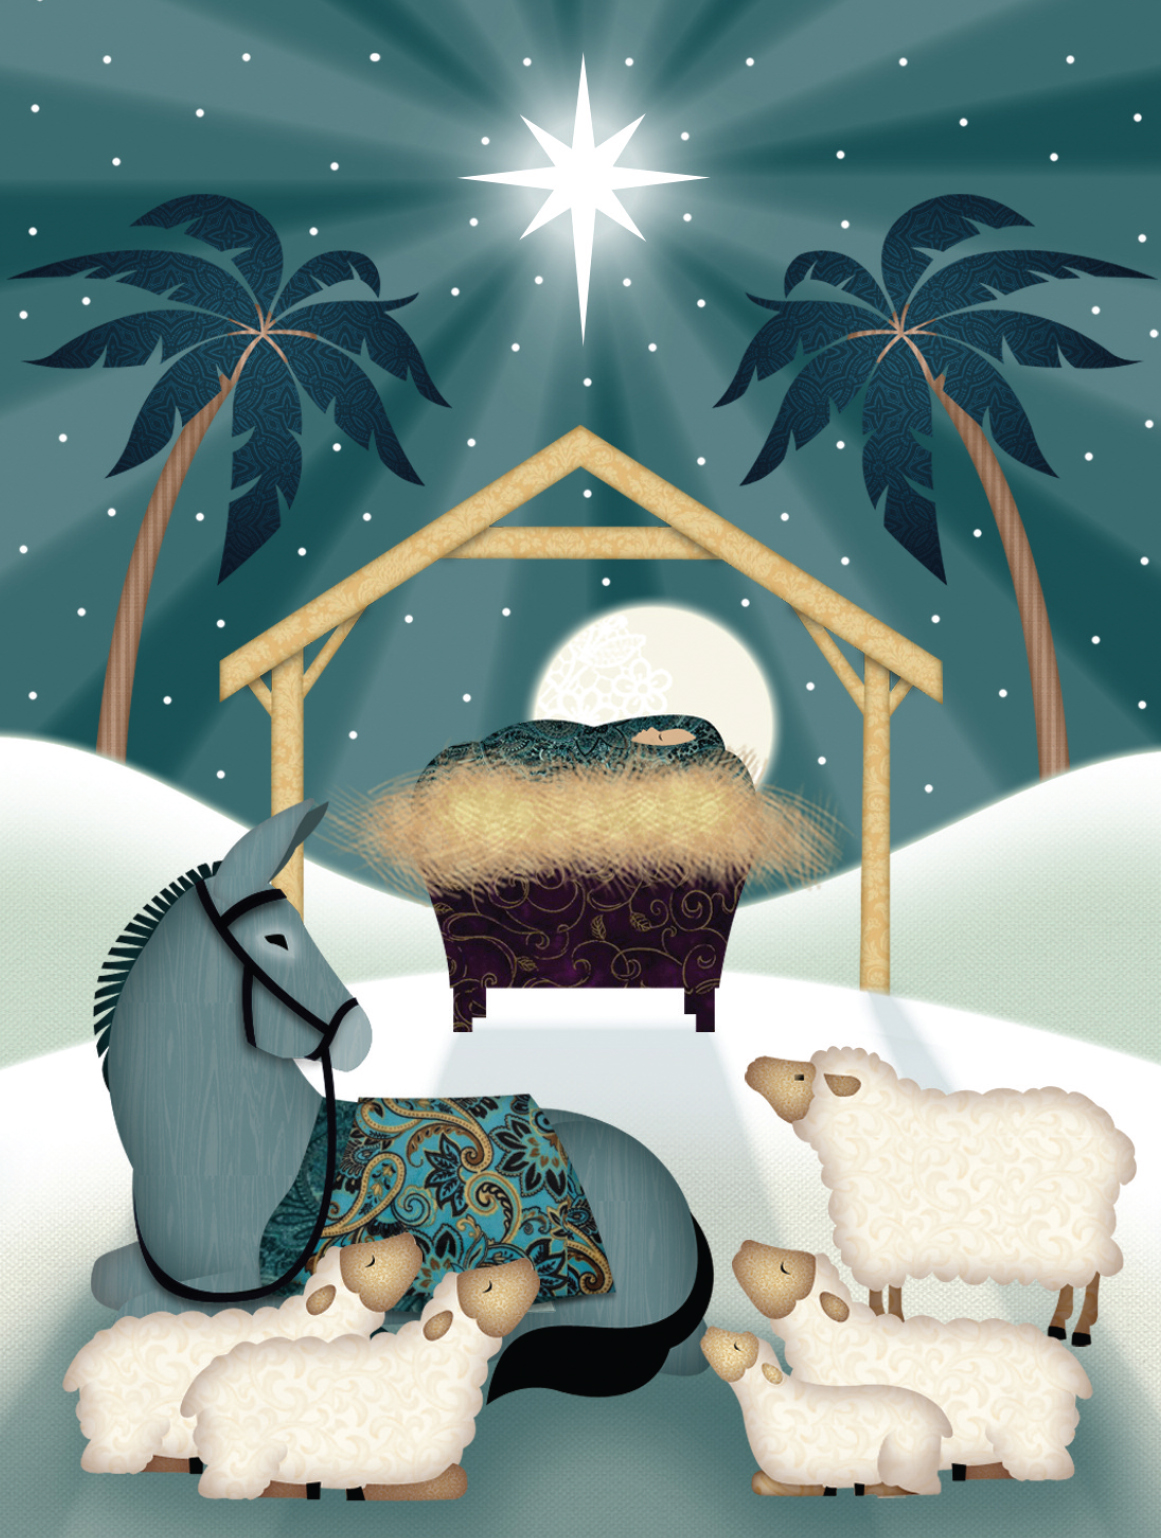 Animals at the Manger